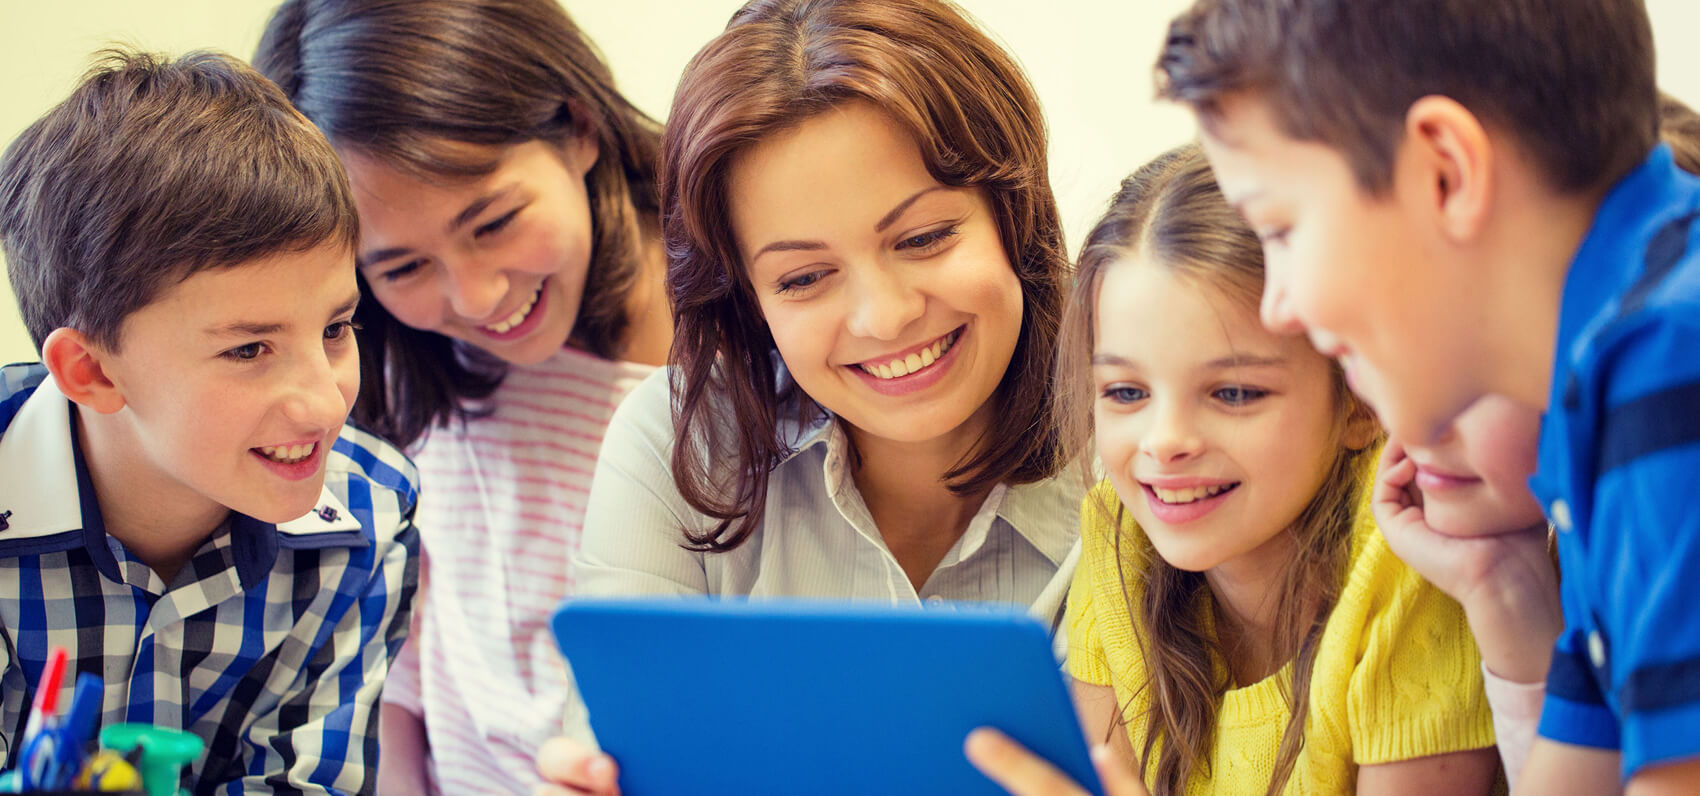 Master of Educational Technology teaching children with a mobile device